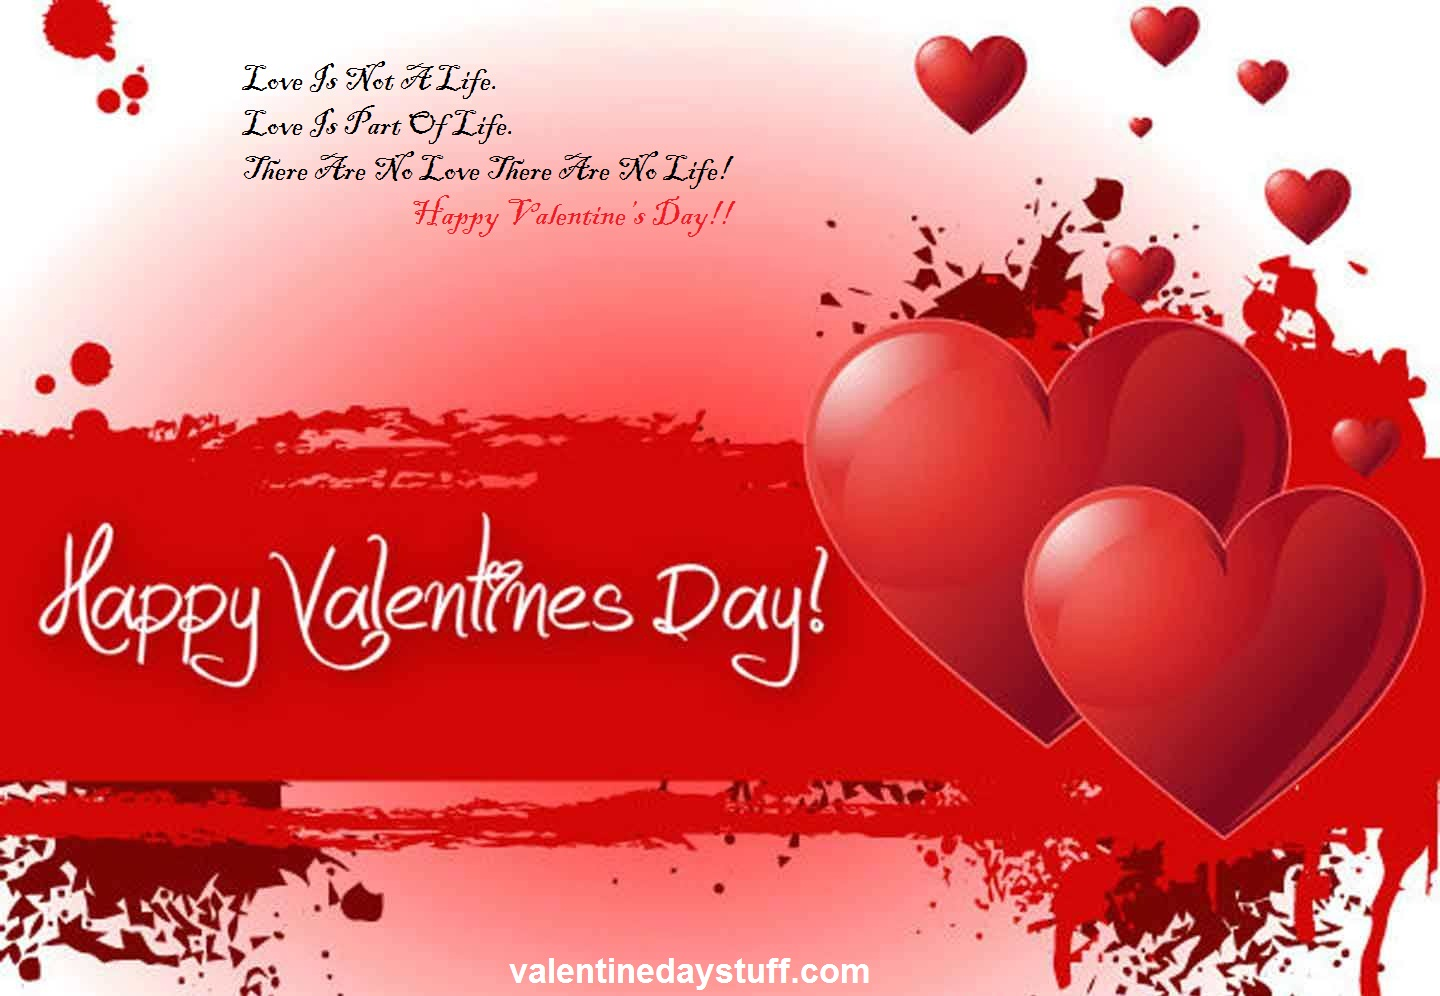 Happy Valentine Day Greeting Cards 2015 for Girlfriend